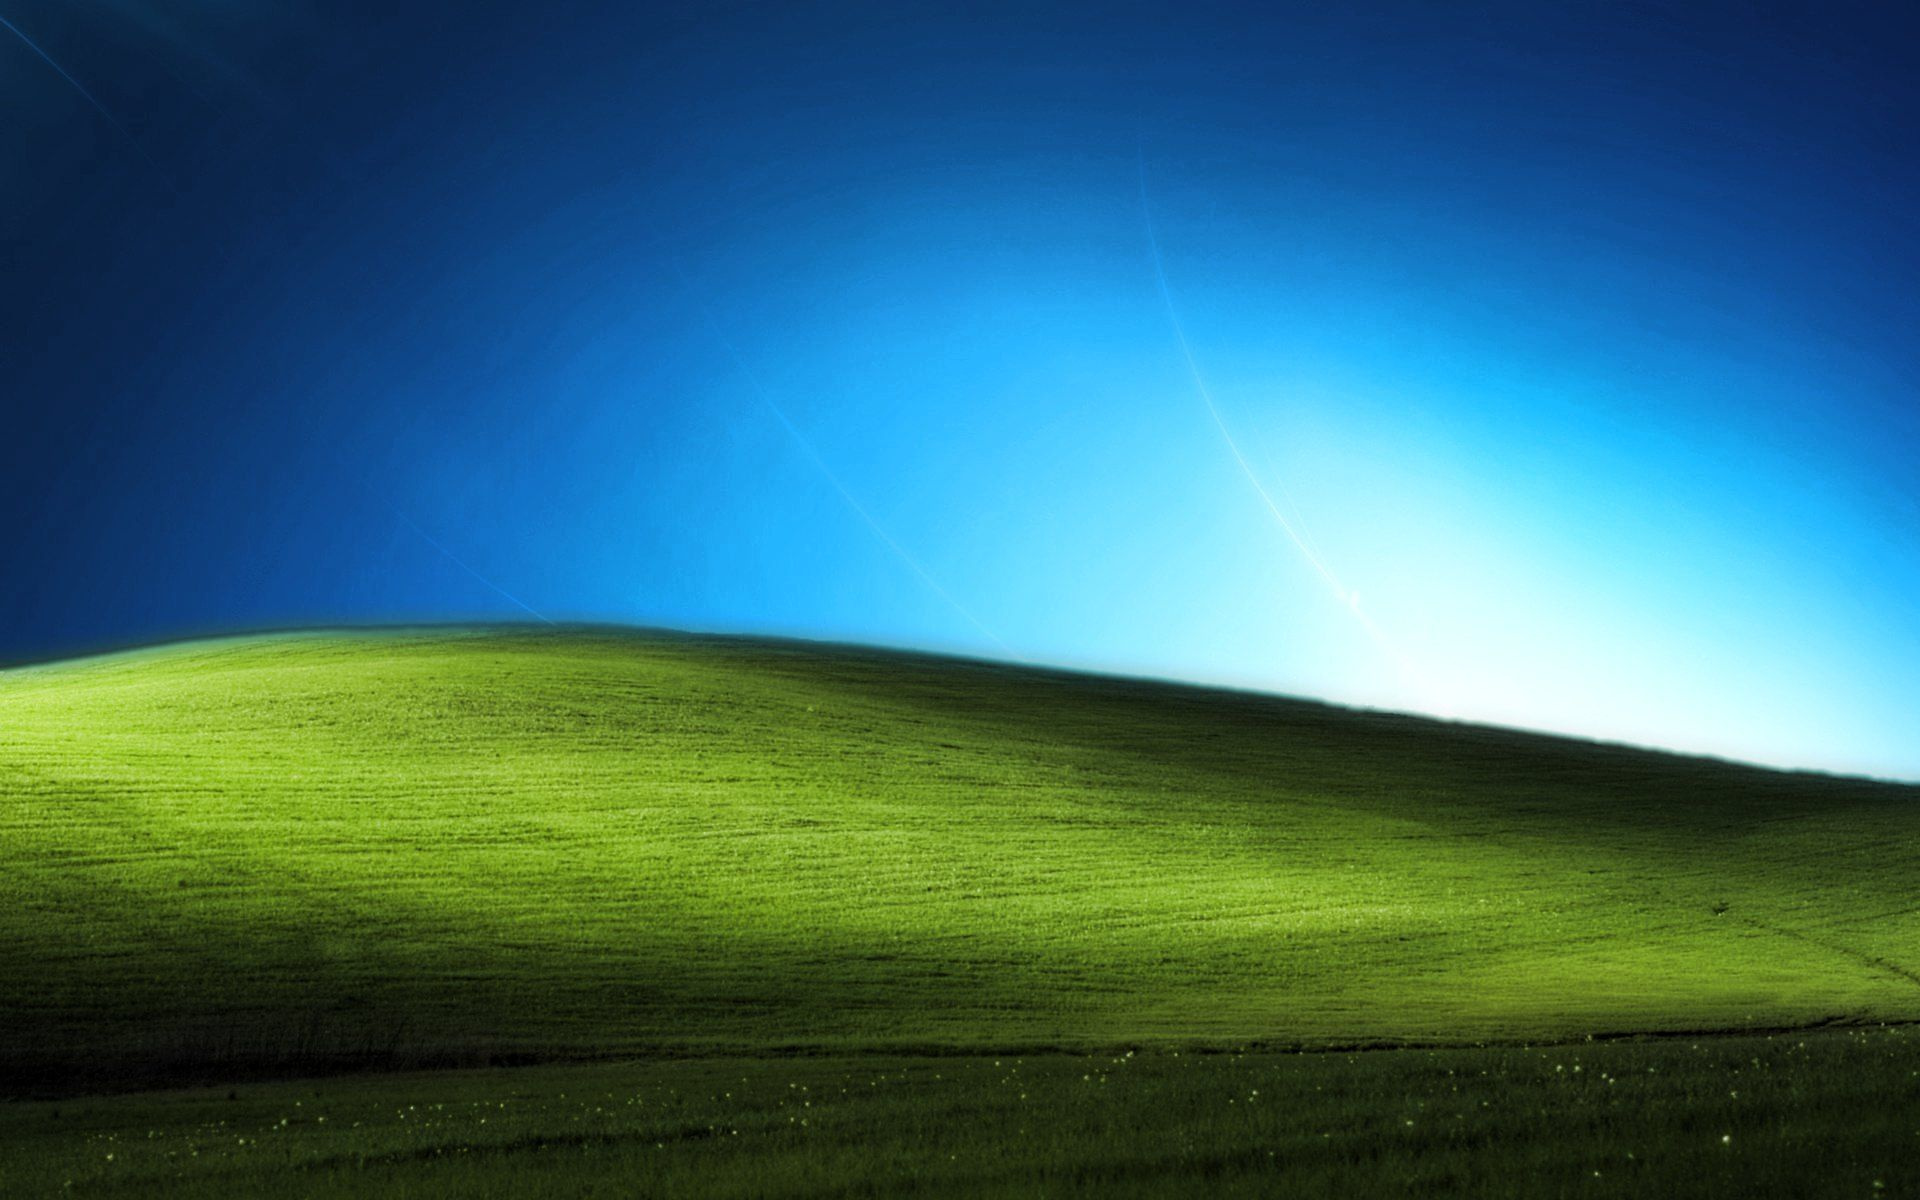 Windows XP Wallpapers HD Wallpaper 4K 4K In 2020 (With Images